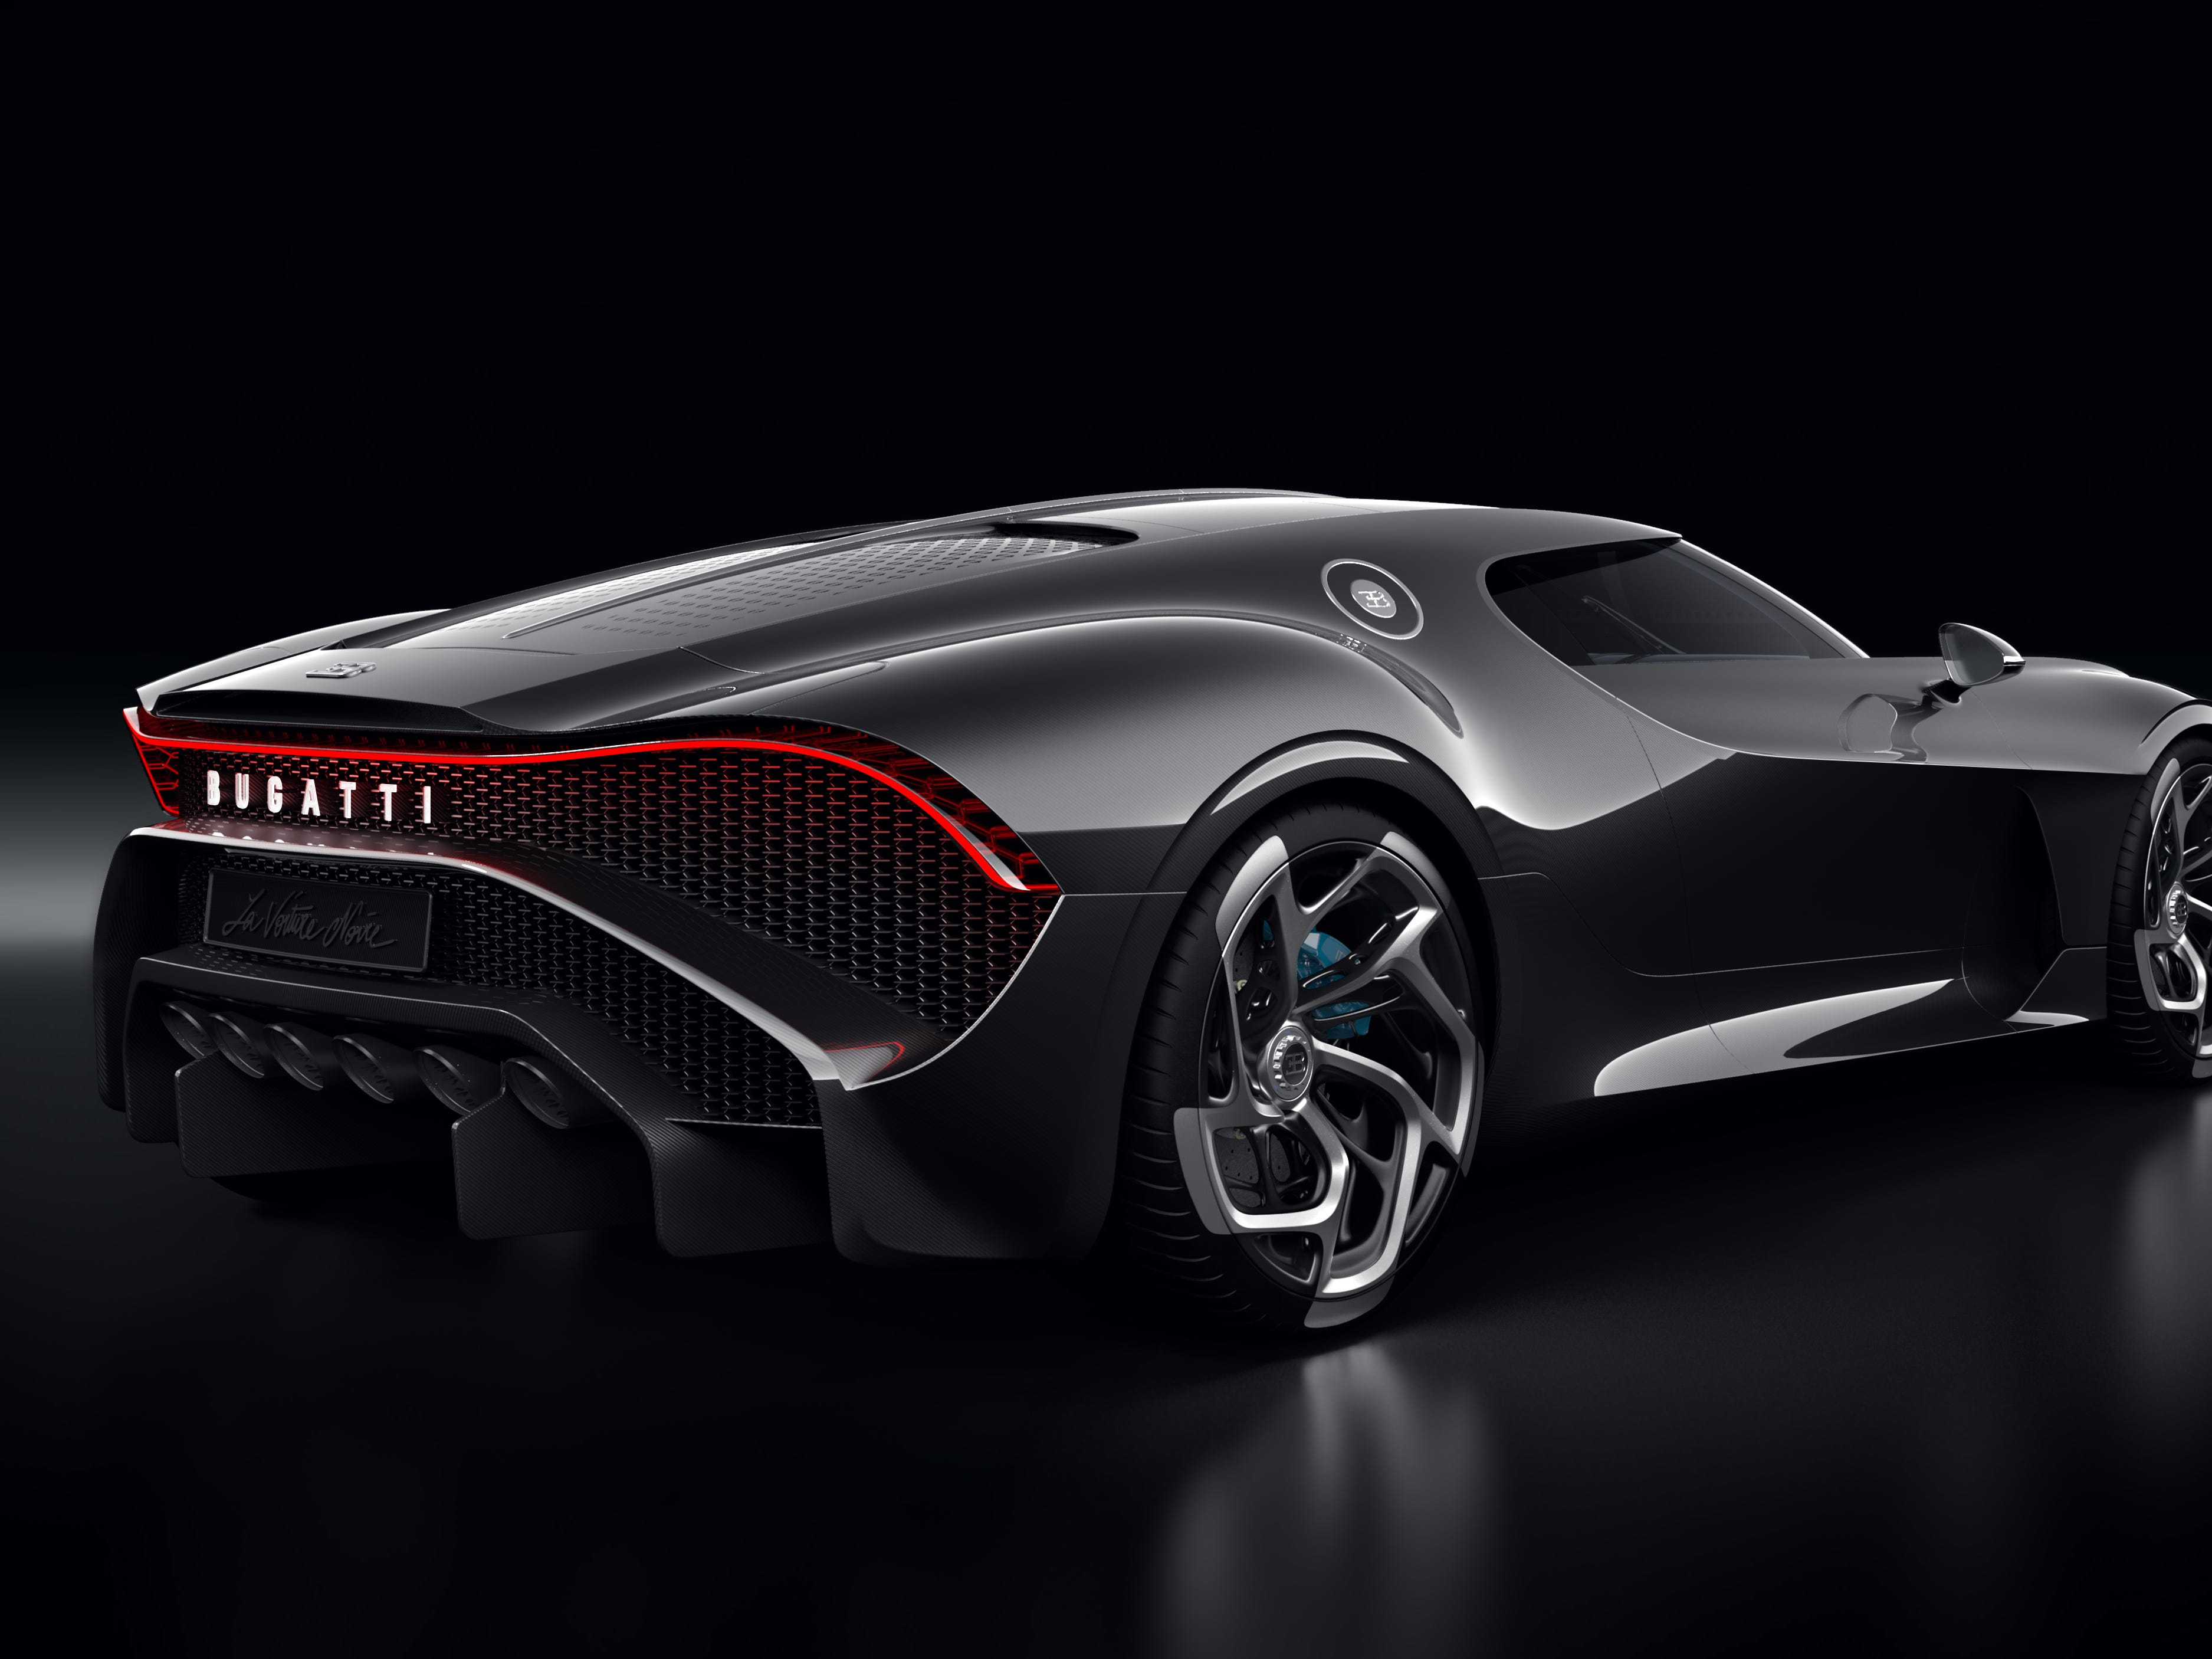 Bugatti says it's the world's most expensive new car.